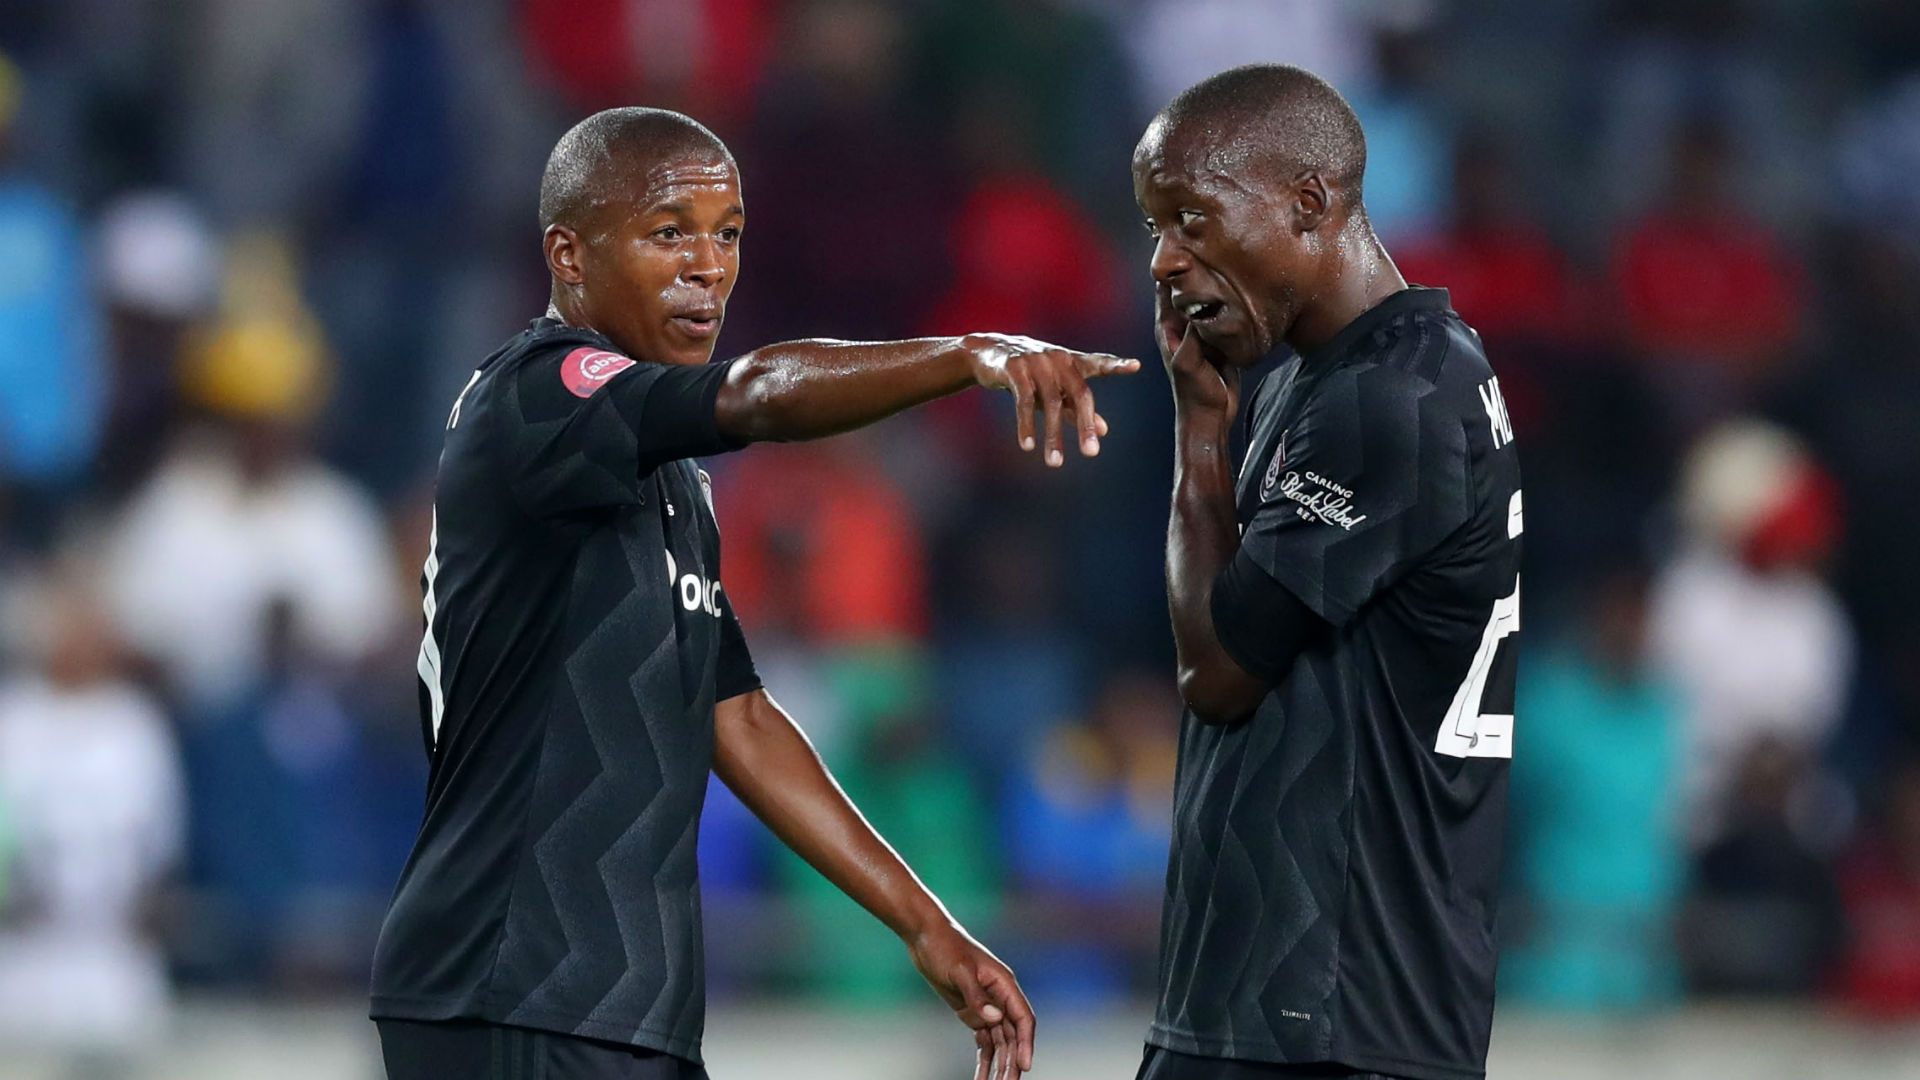 Luvuyo Memela & Ben Motshwari, Orlando Pirates, April 2019